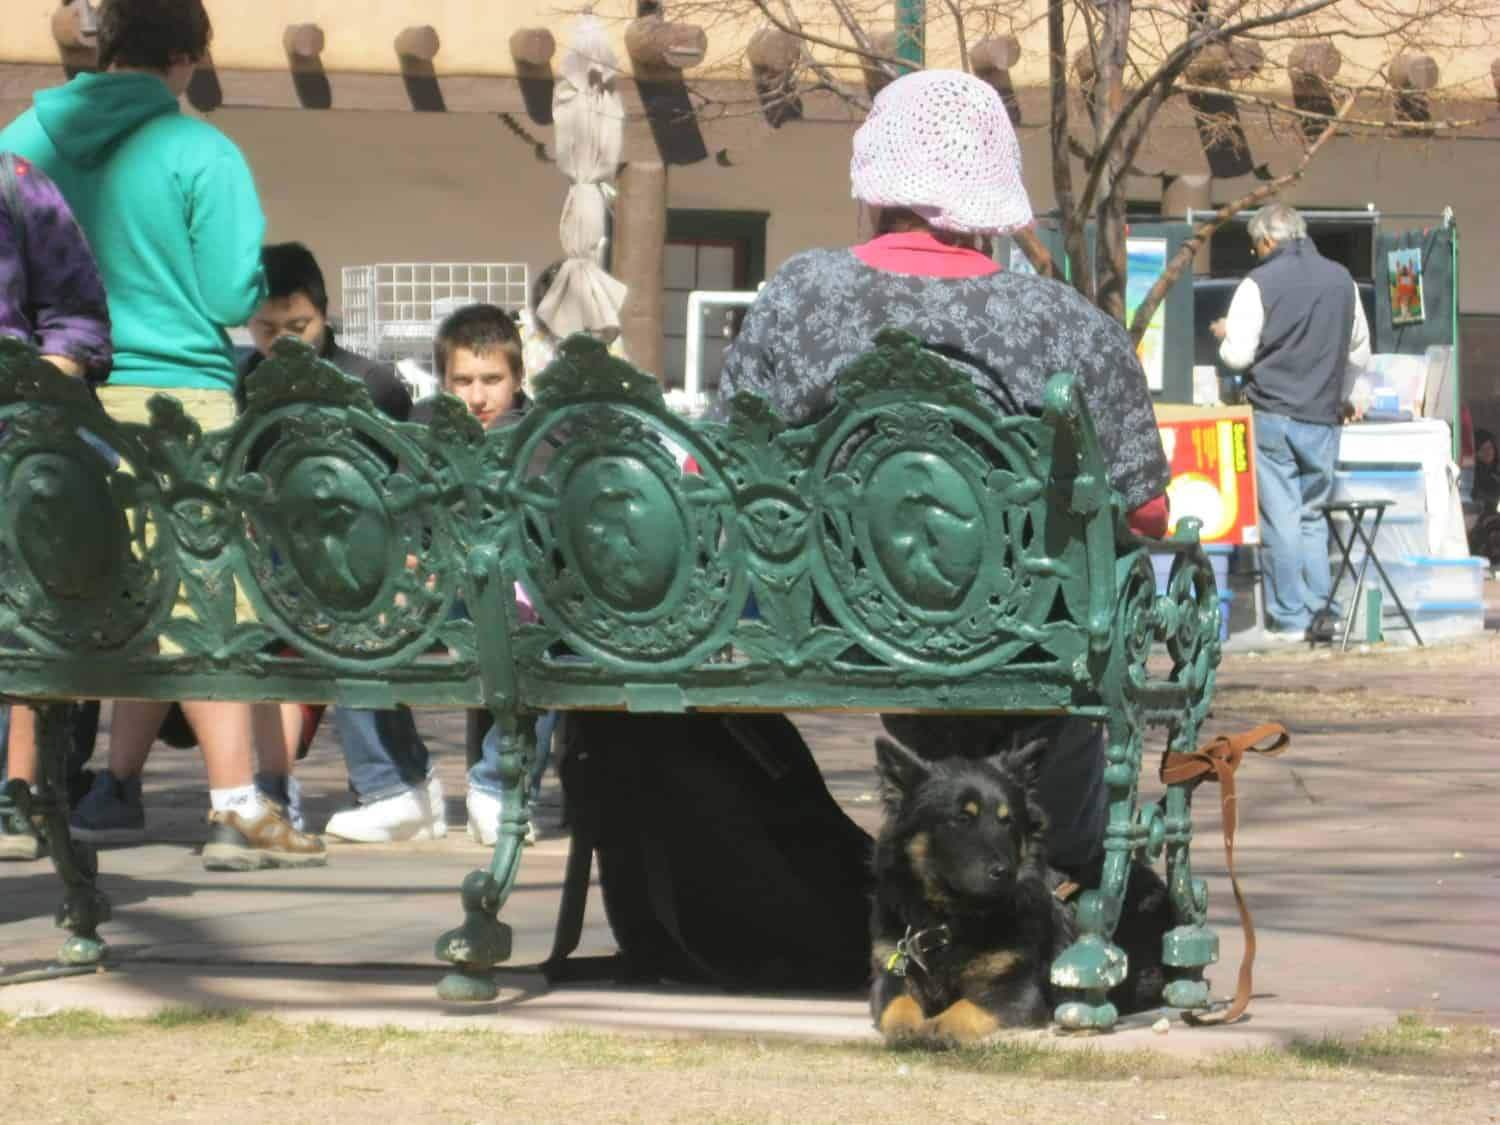 Black and tan dog lying under a green bench in the Plaza in Santa Fe, NM